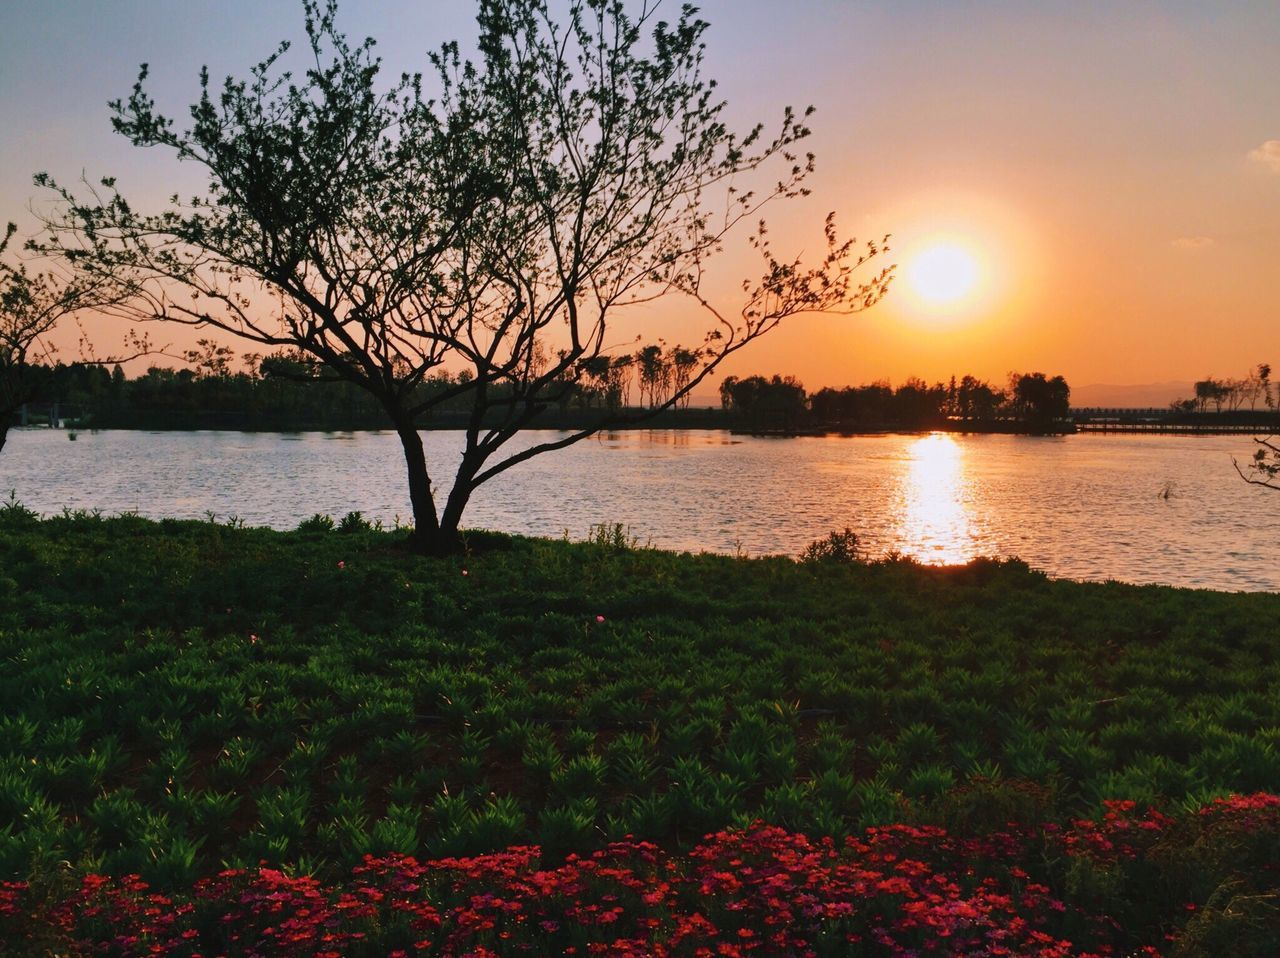 sunset, beauty in nature, nature, water, scenics, lake, tranquility, tree, tranquil scene, sun, sky, reflection, no people, outdoors, silhouette, growth, plant, landscape, flower, day